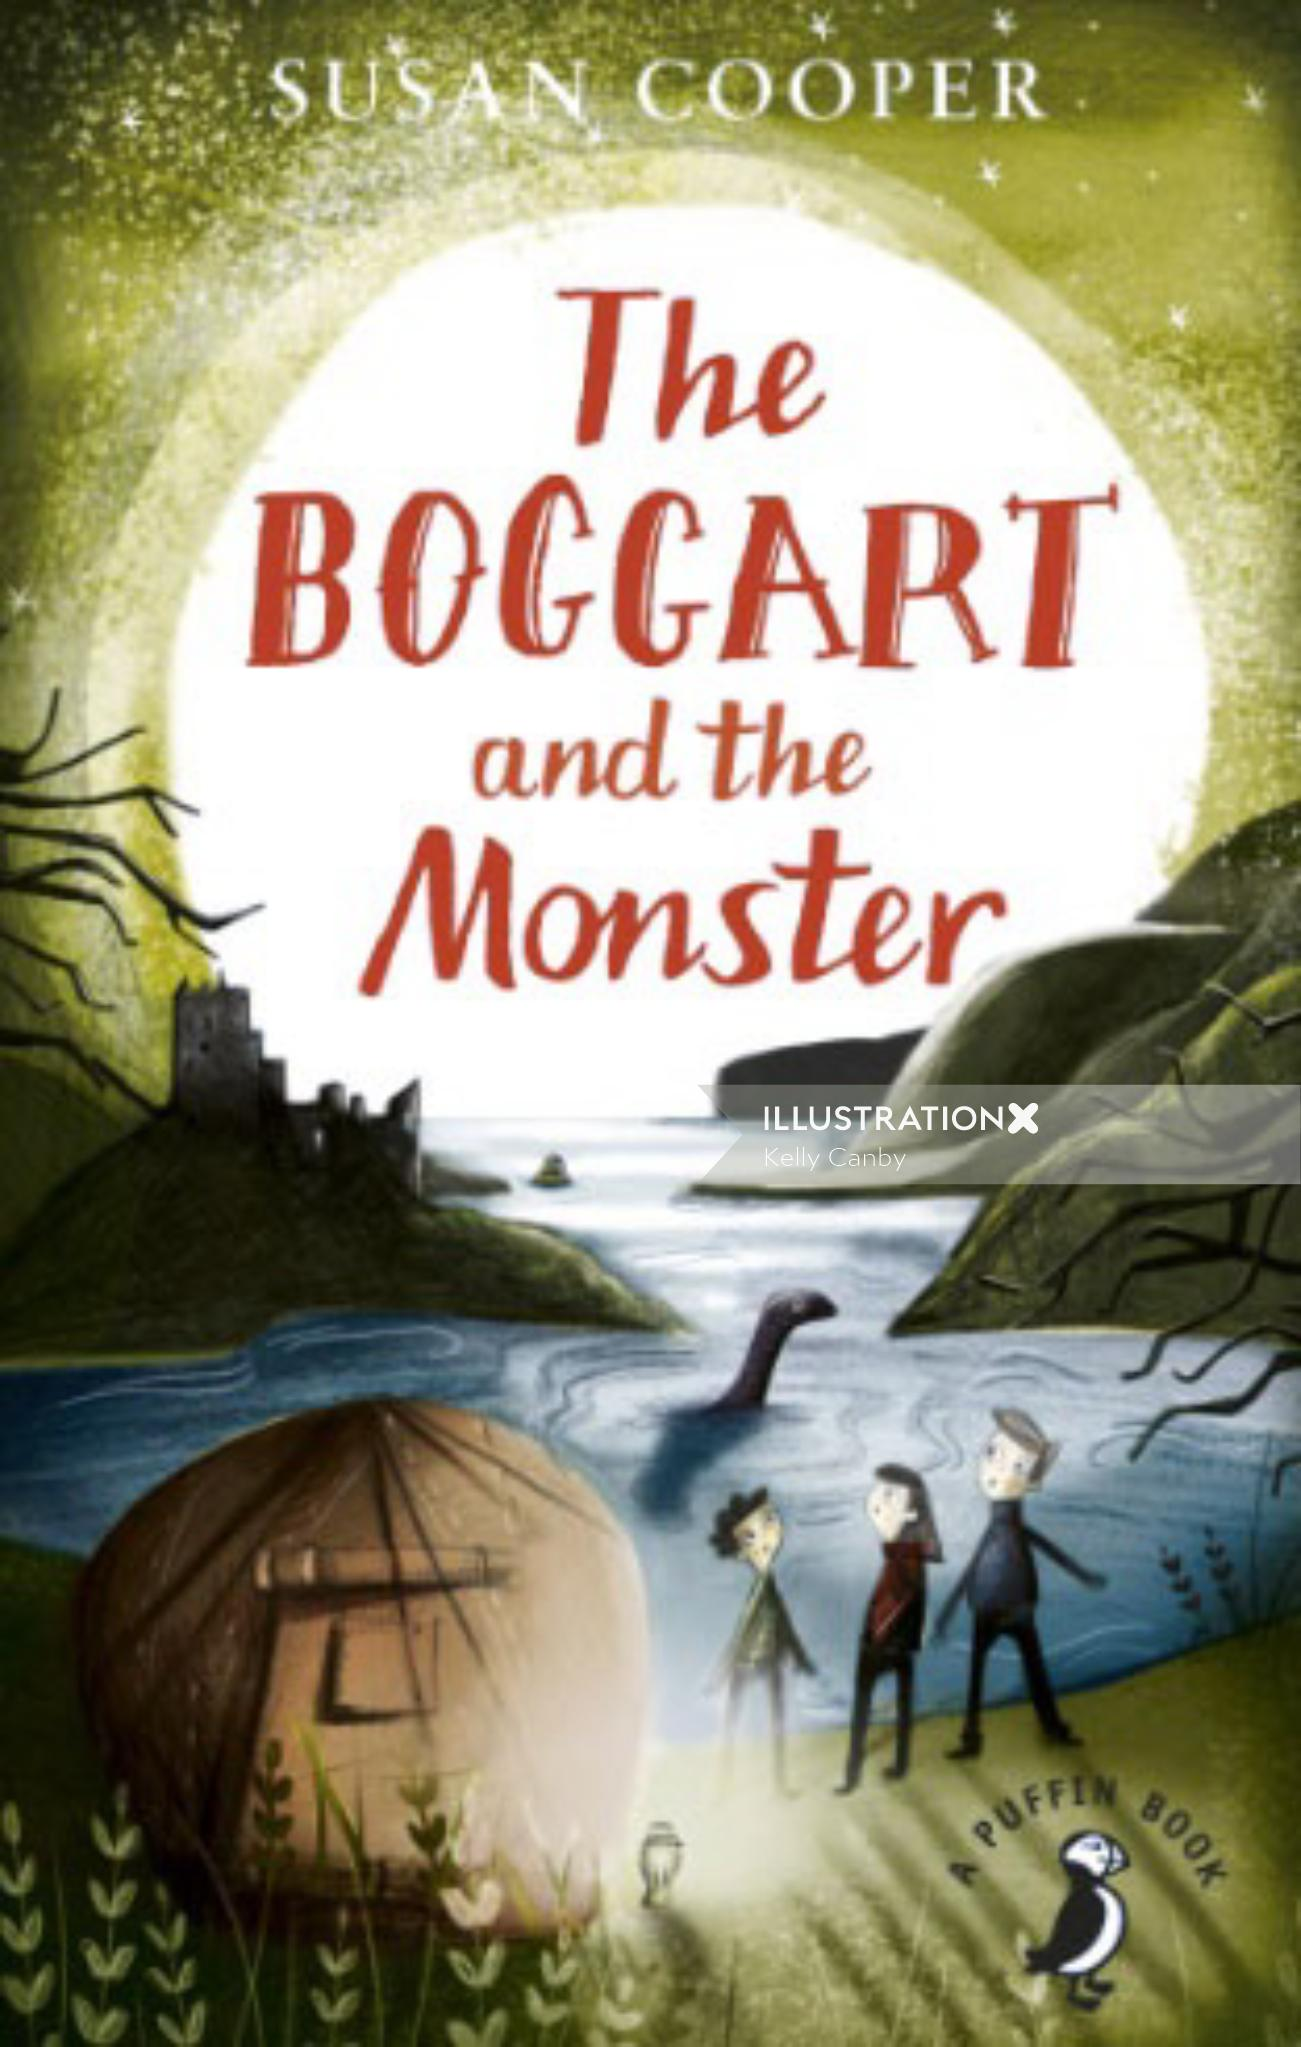 Book cover for the Bogart book